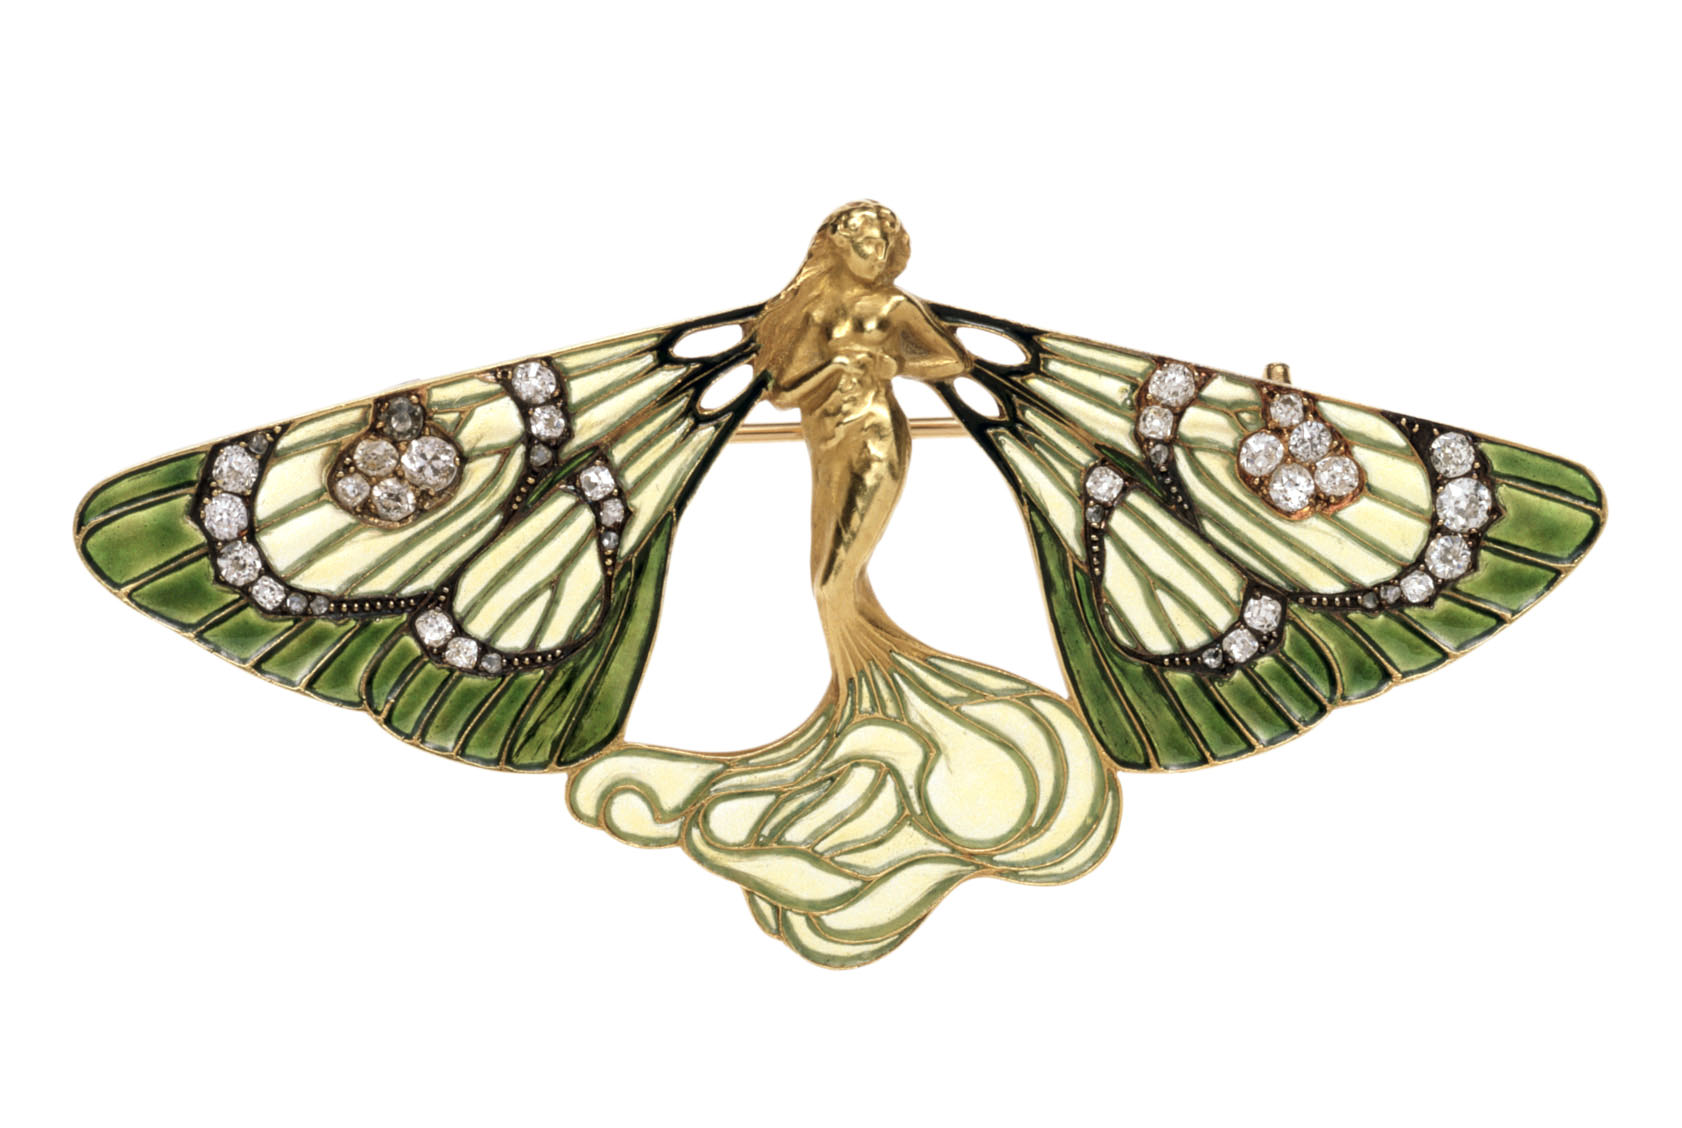 Art Deco Nouveau: 'European Crafts And Design: Art Nouveau, Art Deco'